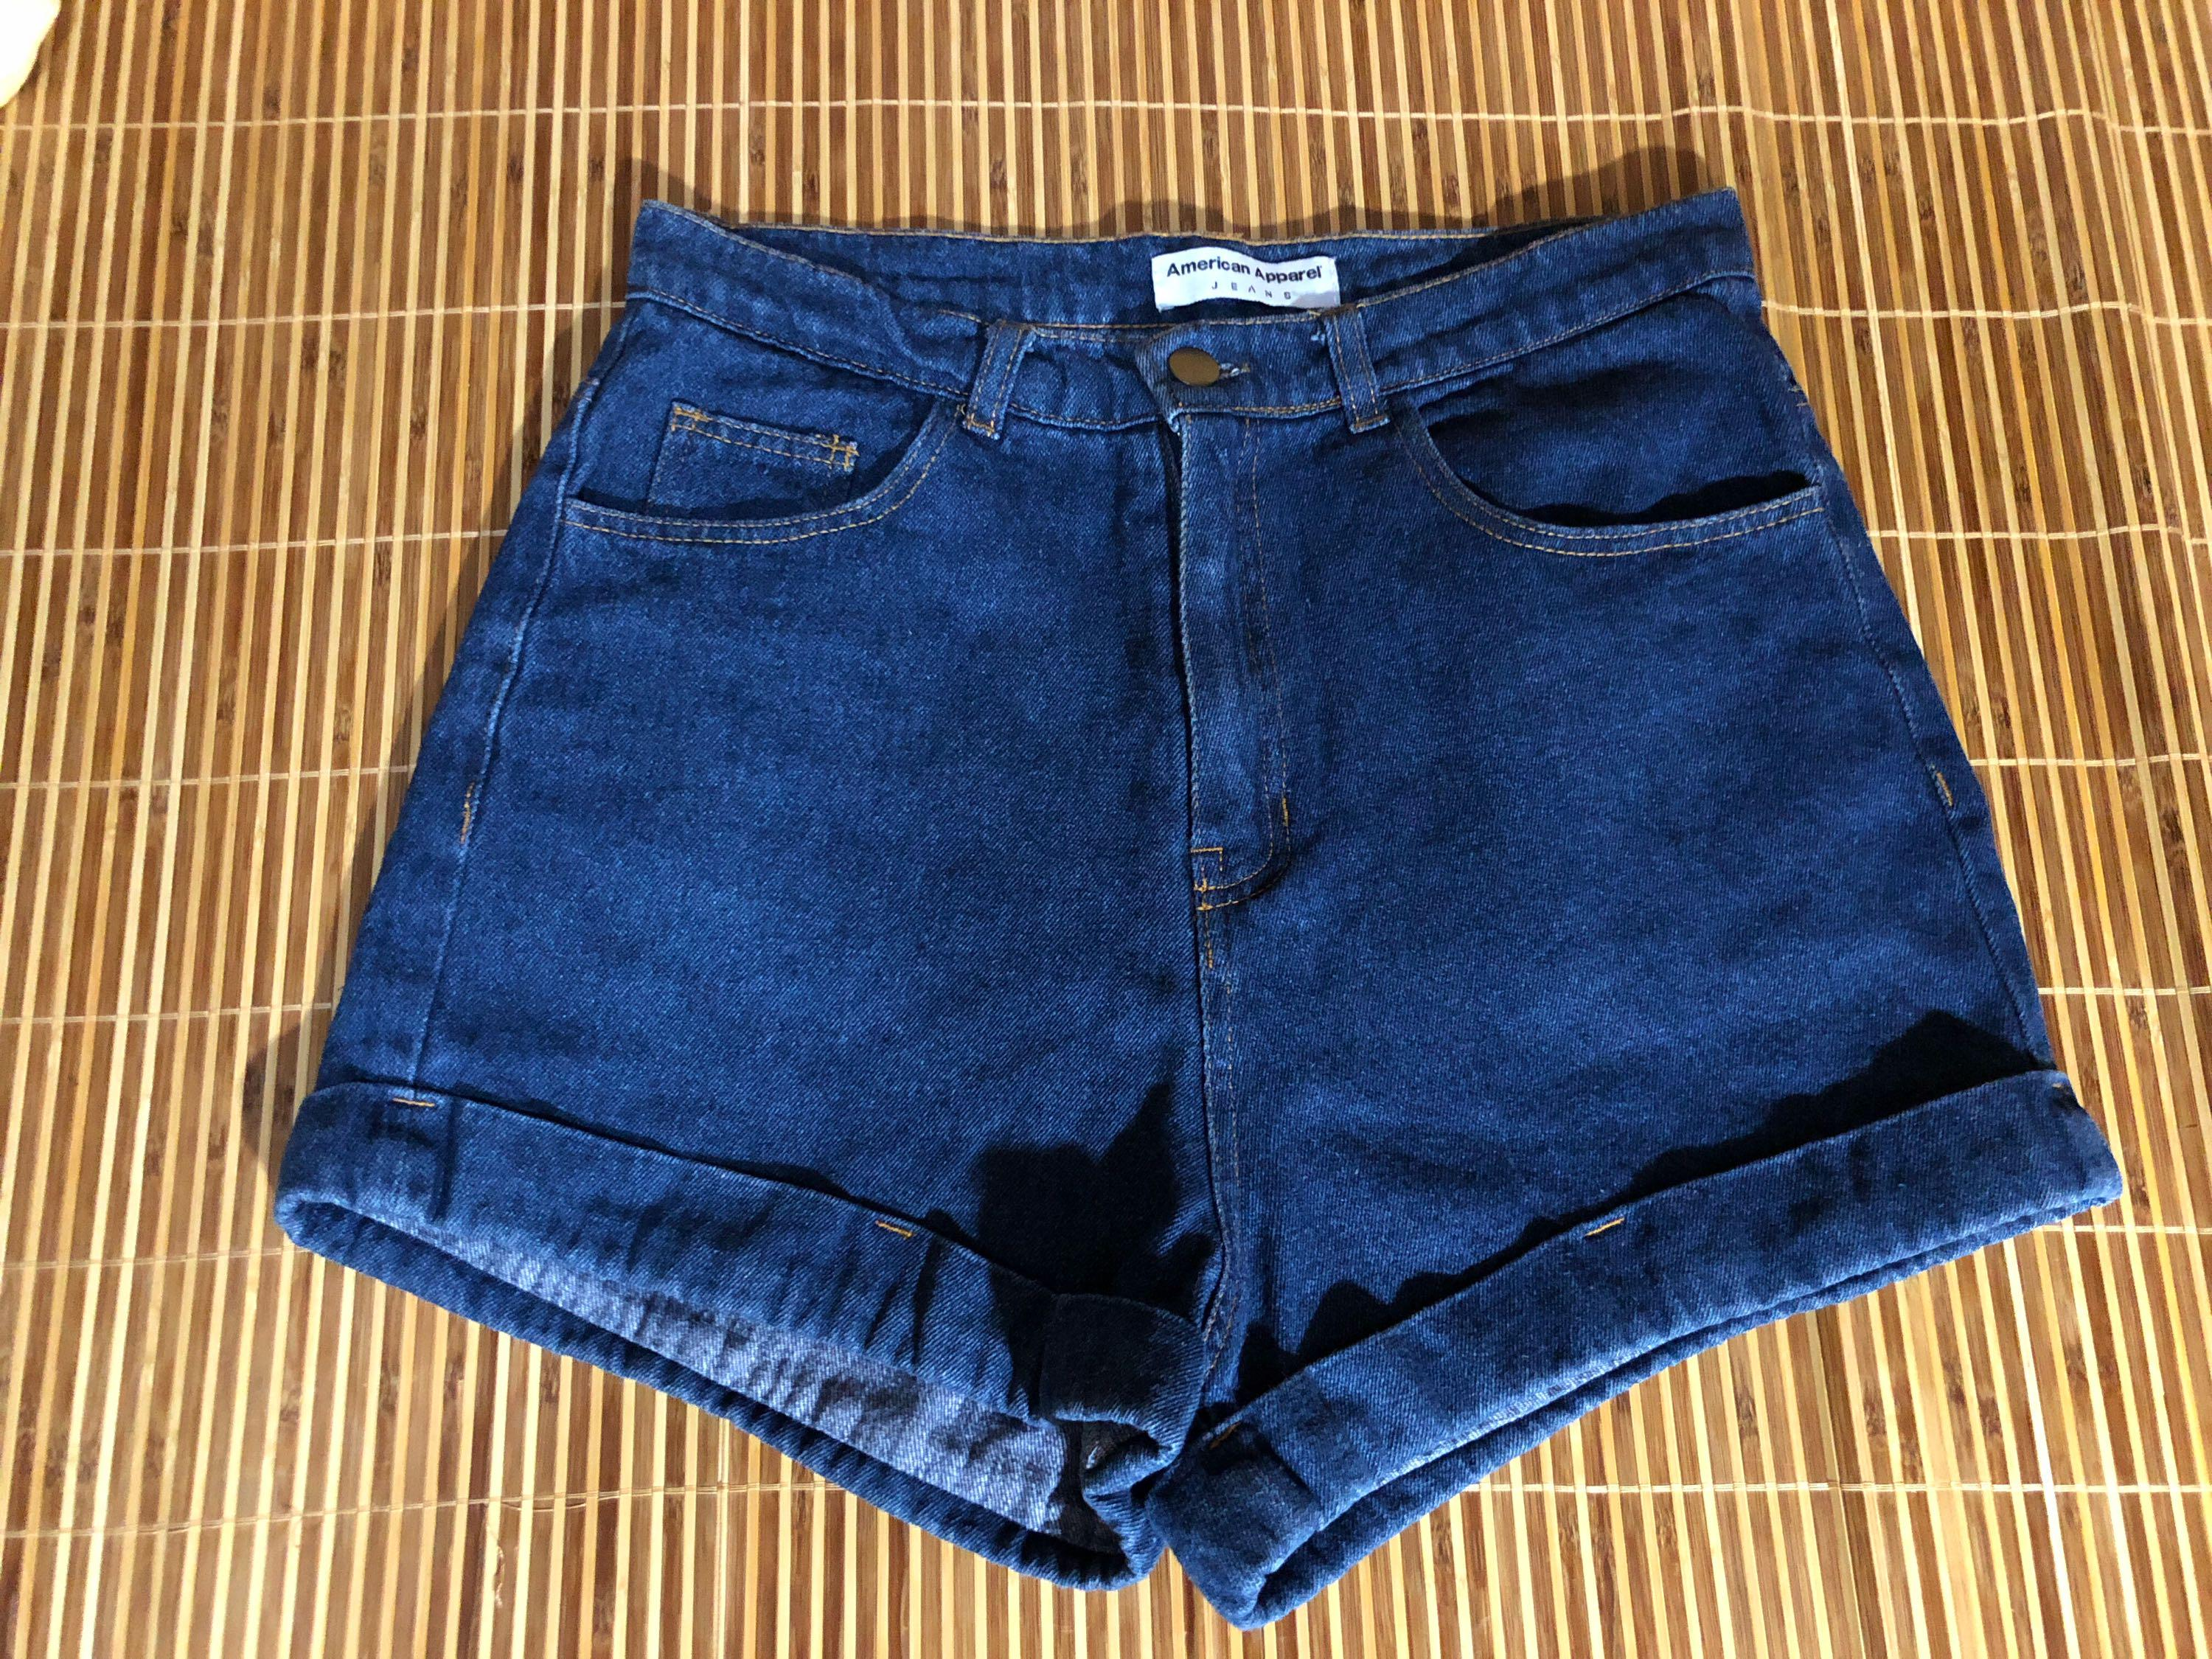 american apparel 藍色牛仔短褲 (not Zara H&M Gap collet point Lowry's farm Hollister jack wills American Eagle outfitters)